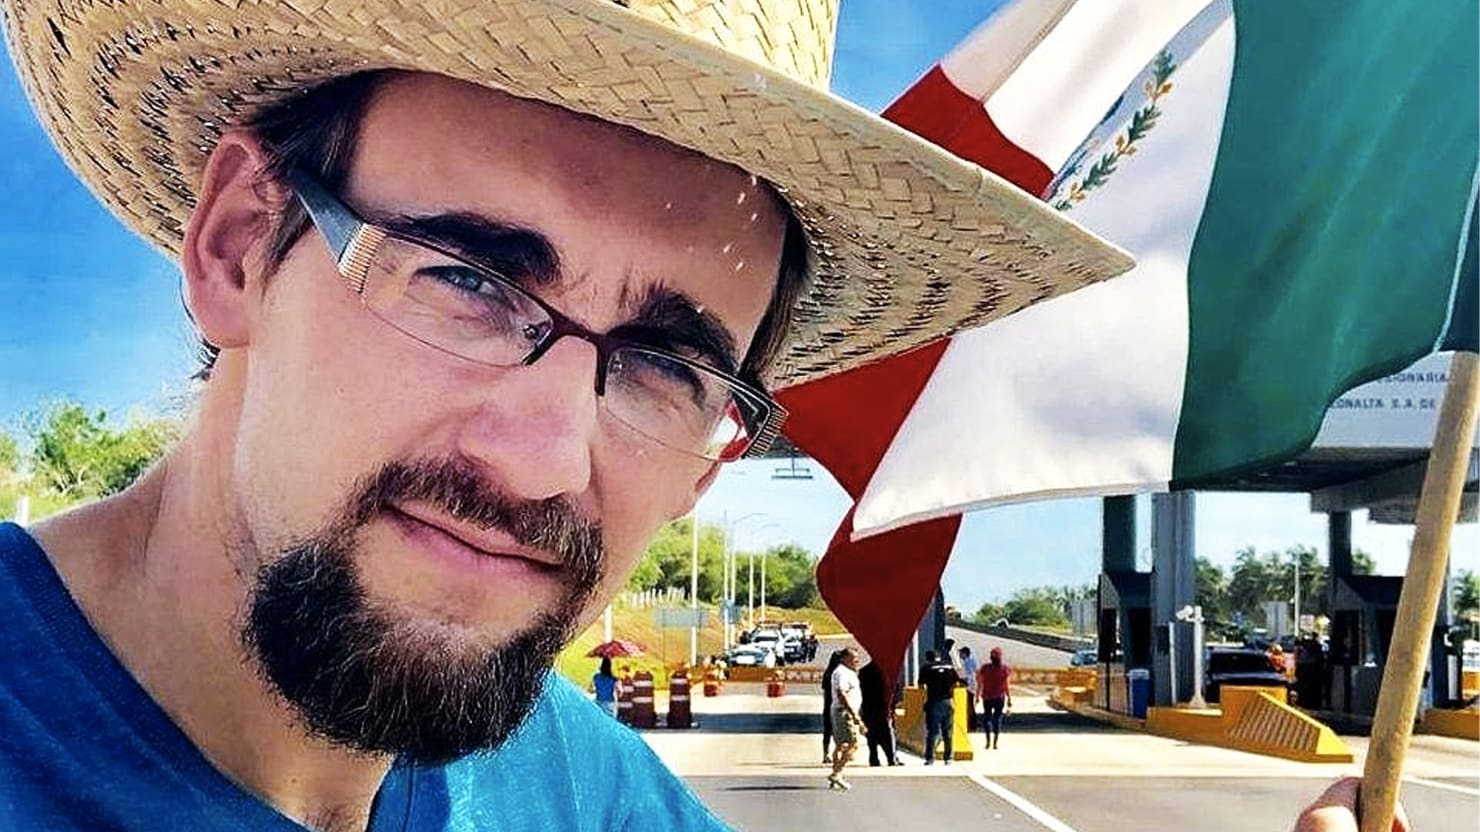 The Bizarre Story of a Far-Right Activist Taking COVID Trutherism to Mexico